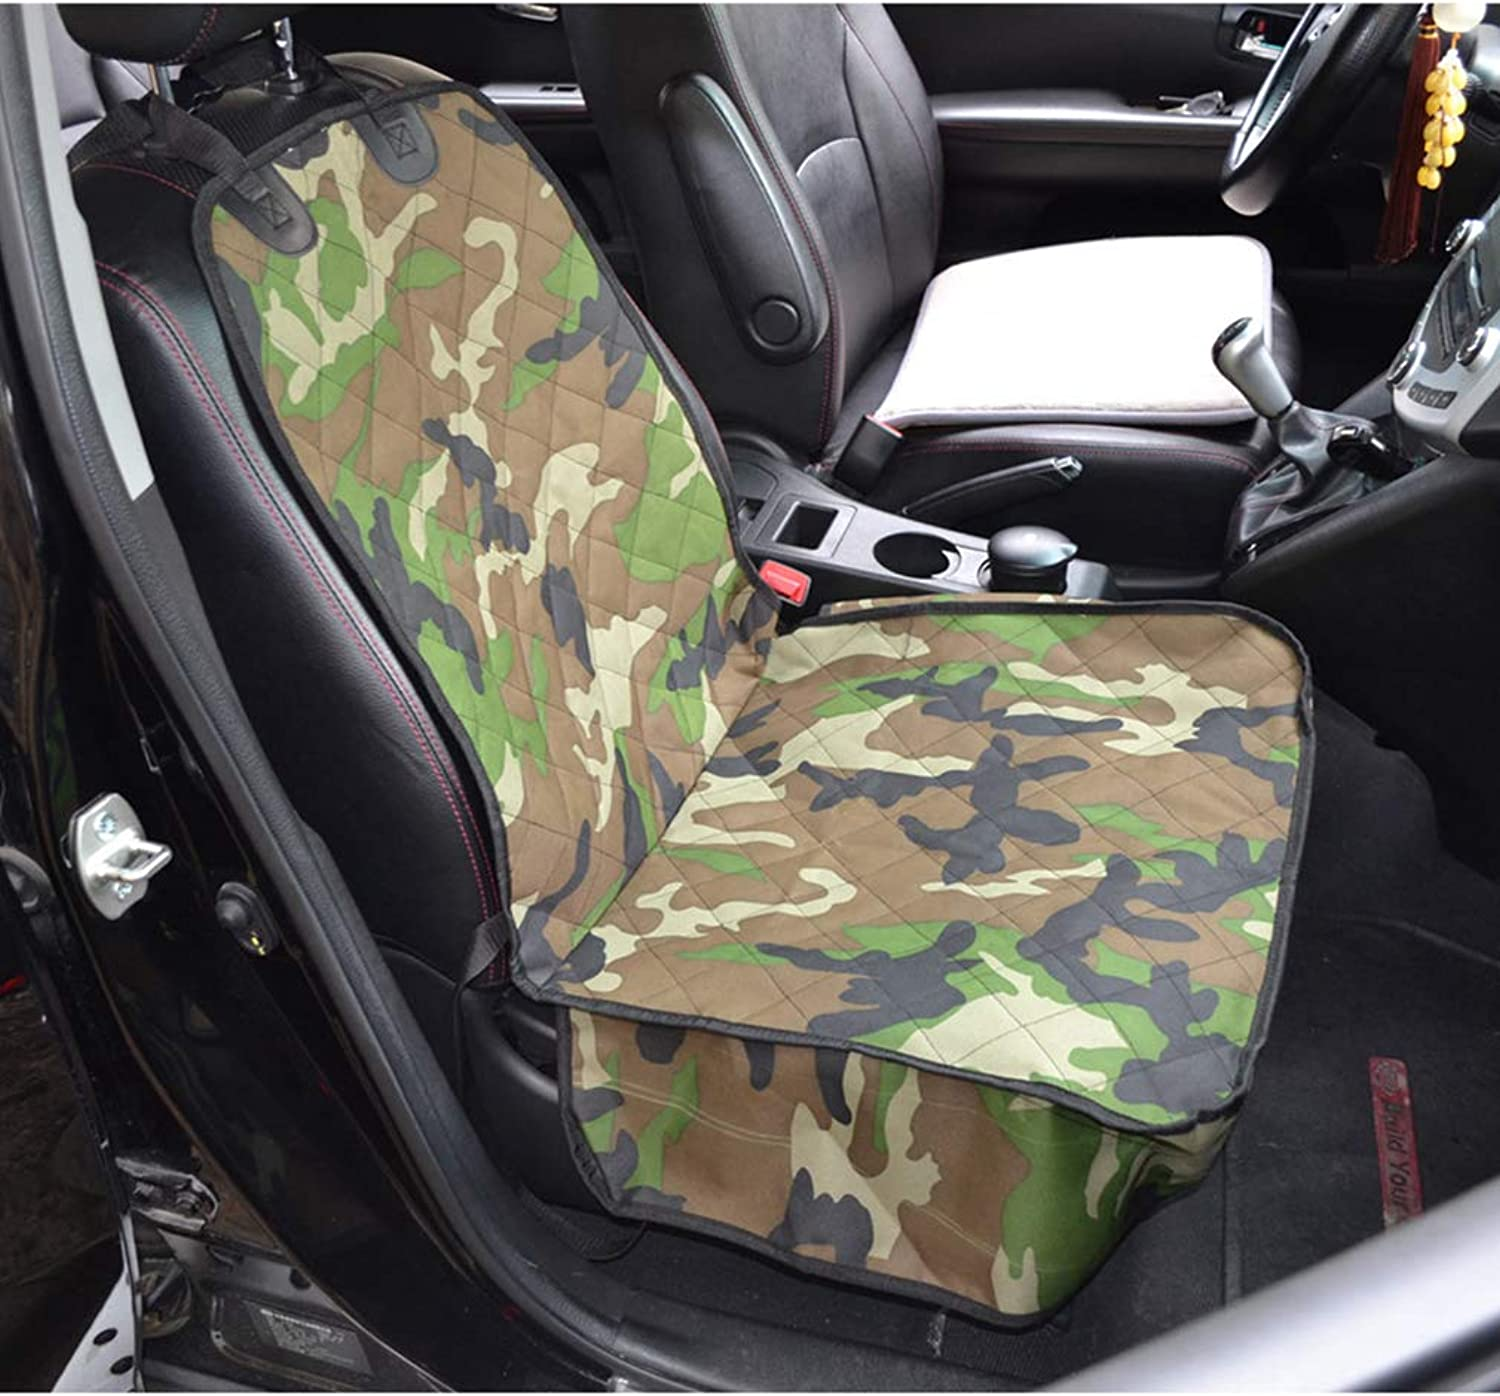 SENERY Pet Dog Car Front Seat Cover Predector,NonSlip Dog Car Mat Blanket Pet Accessories Army Green